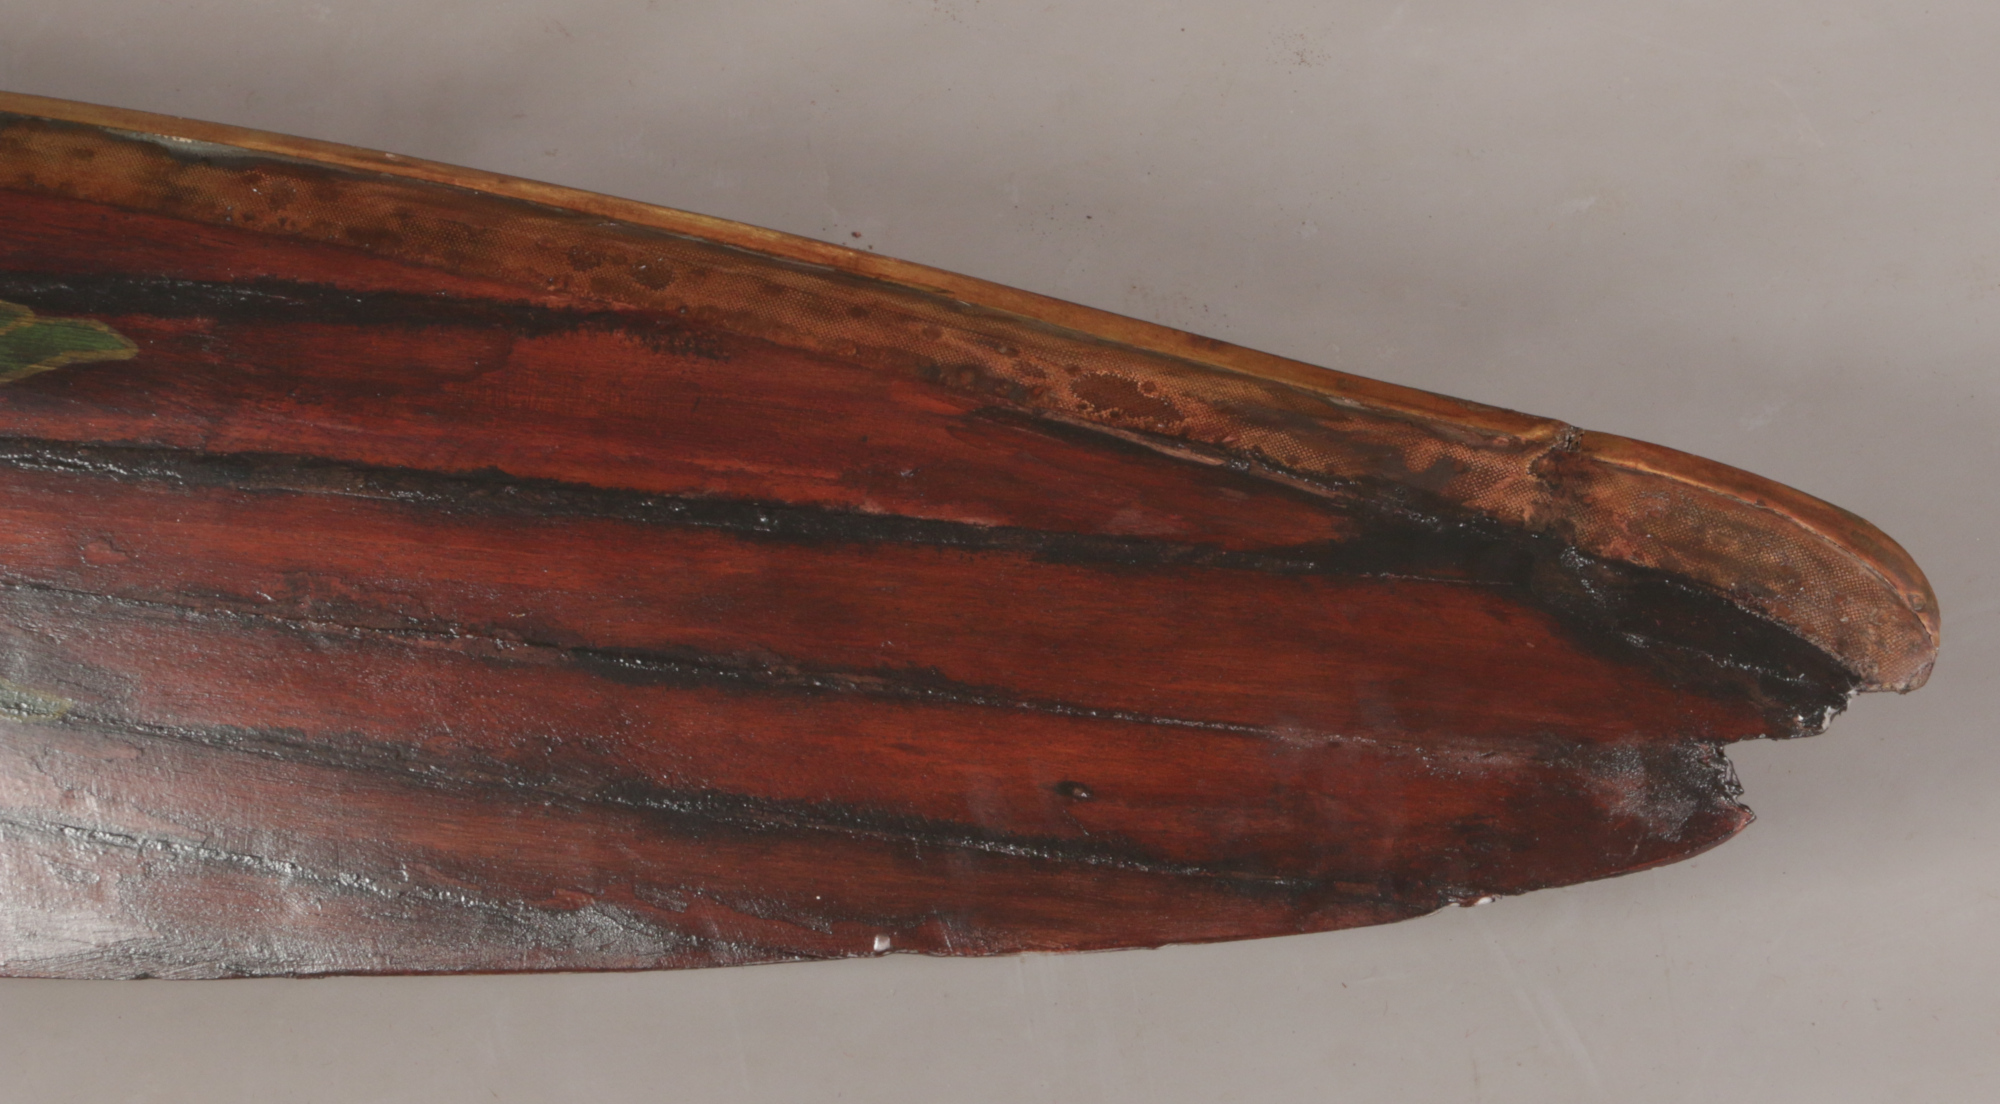 Lot 245 - A World War II RAF wooden propeller from a Hawker Swordfish bi-plane. Metal and canvas edging and